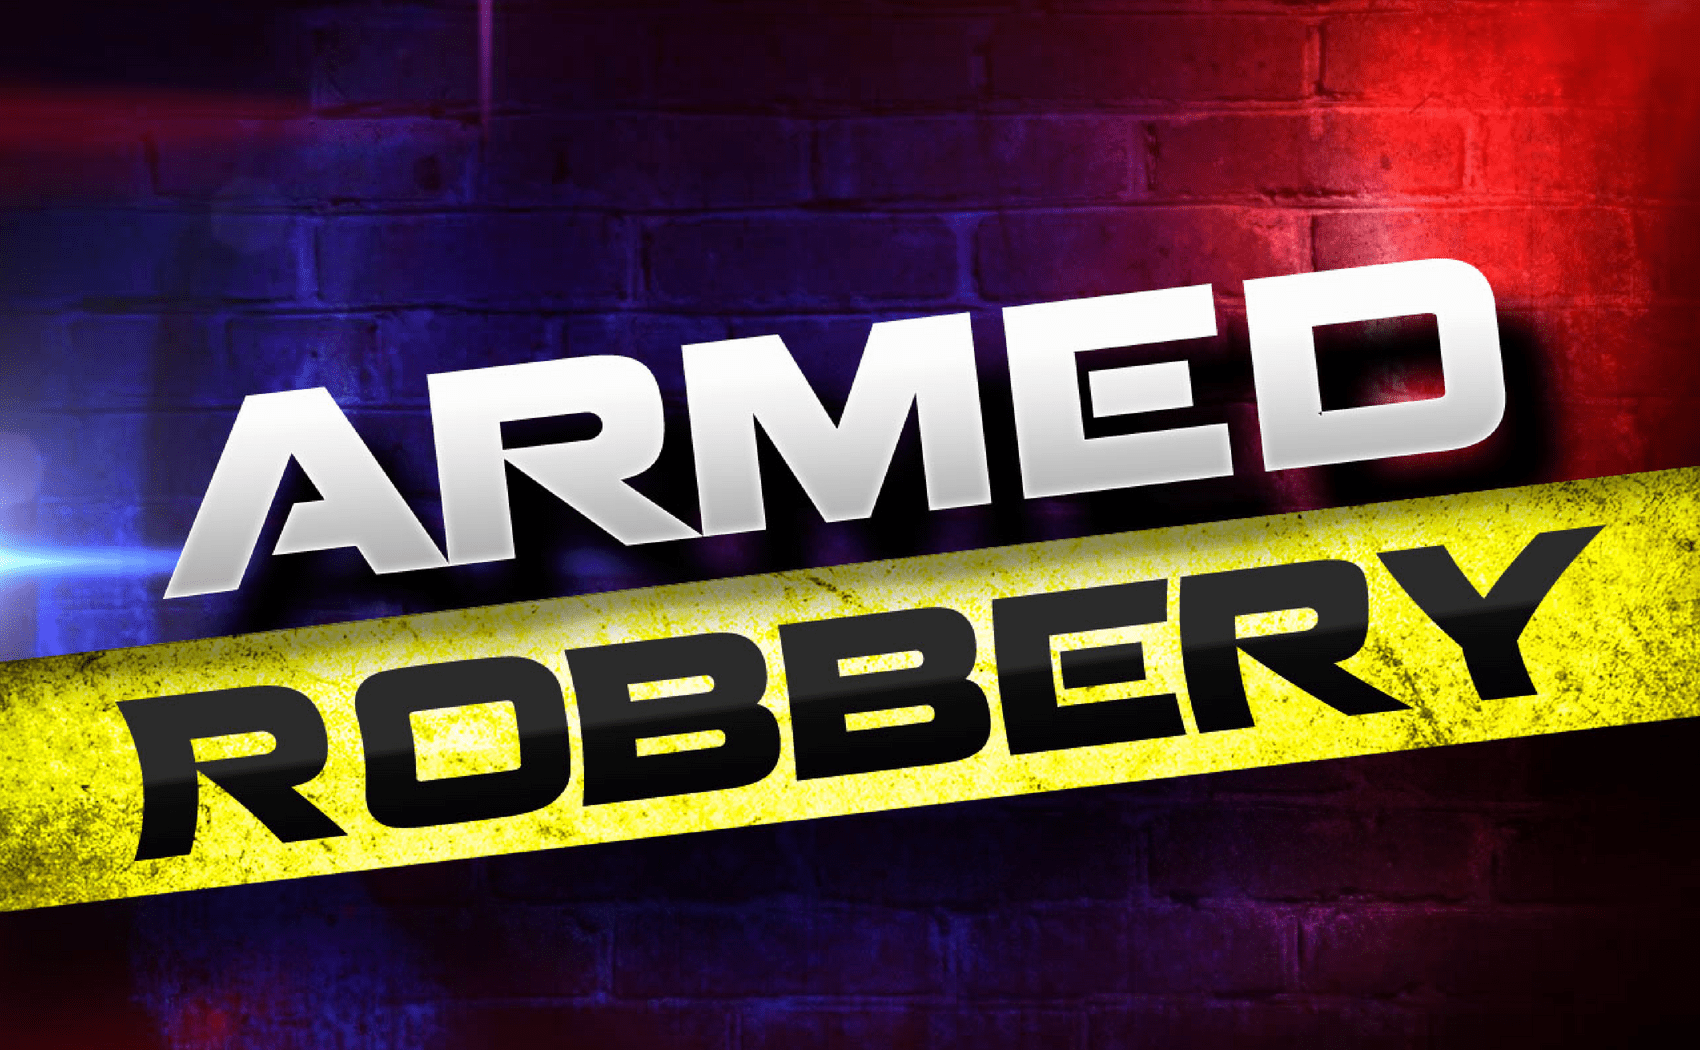 Three armed robberies within 12 hours